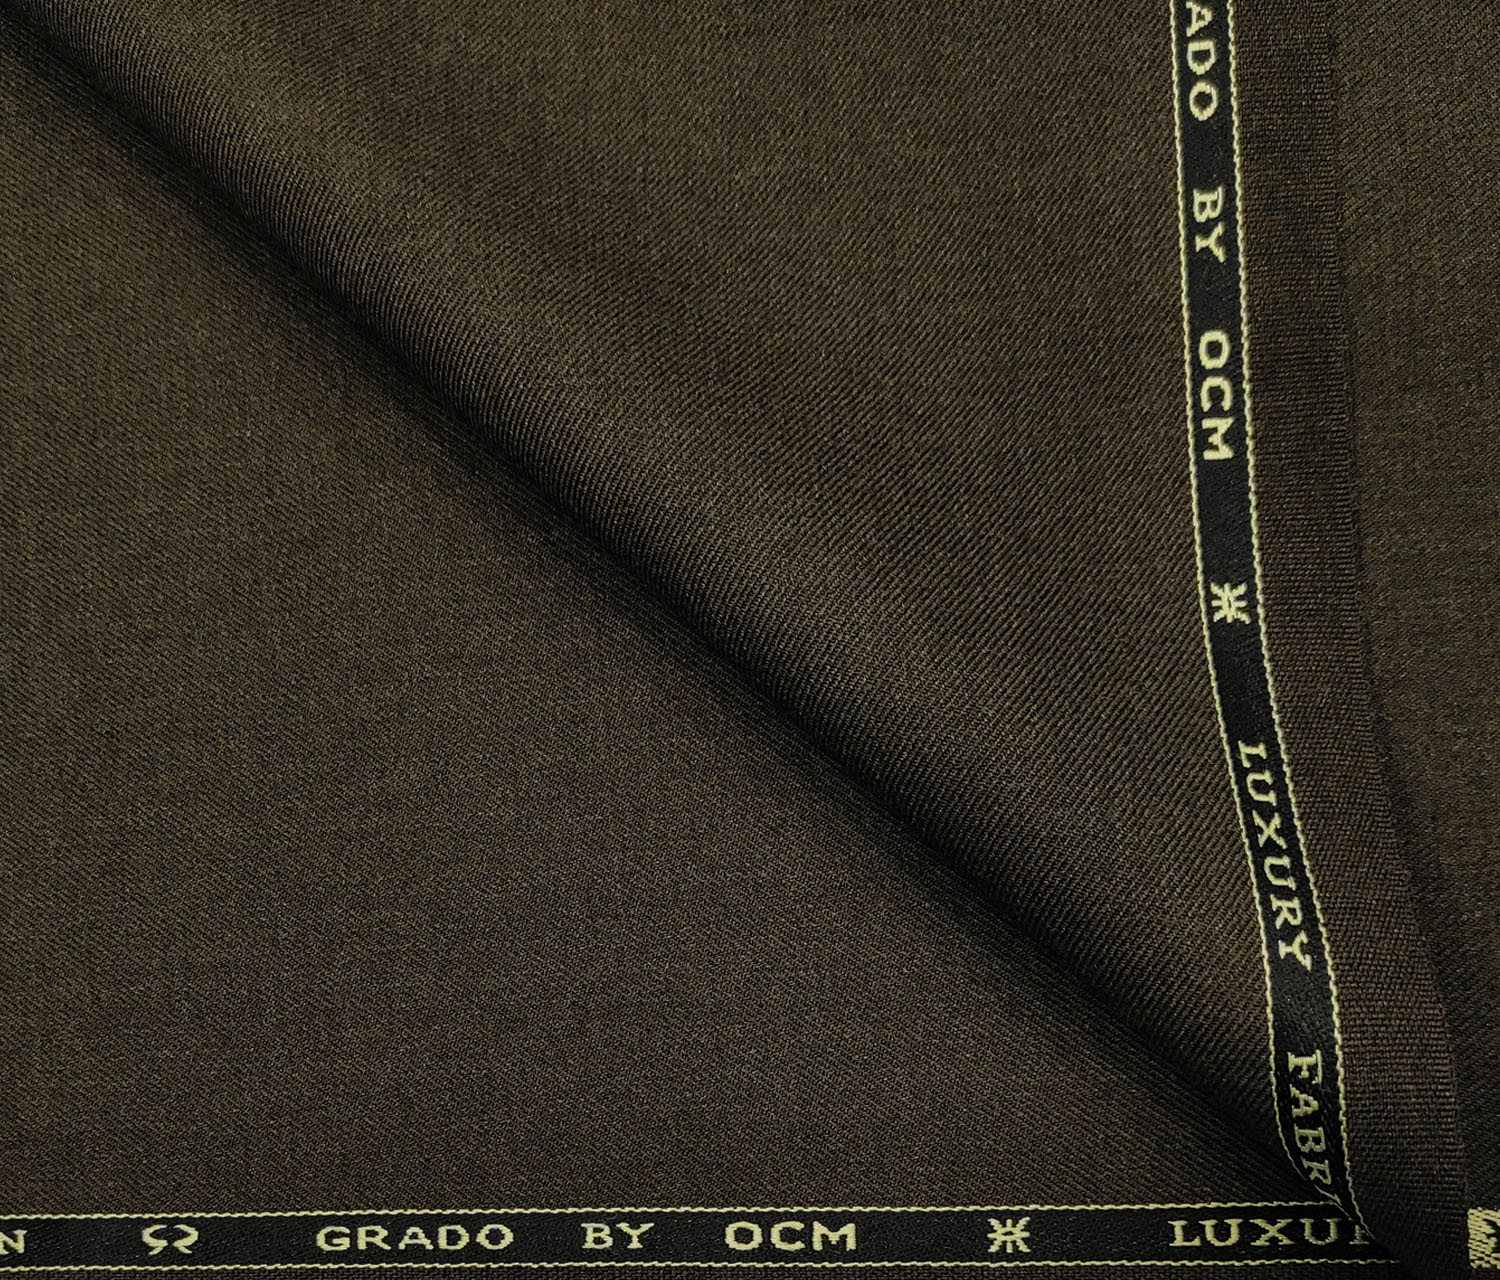 OCM Men's Wool Solids Unstitched Suiting Fabric (Dark Brown)